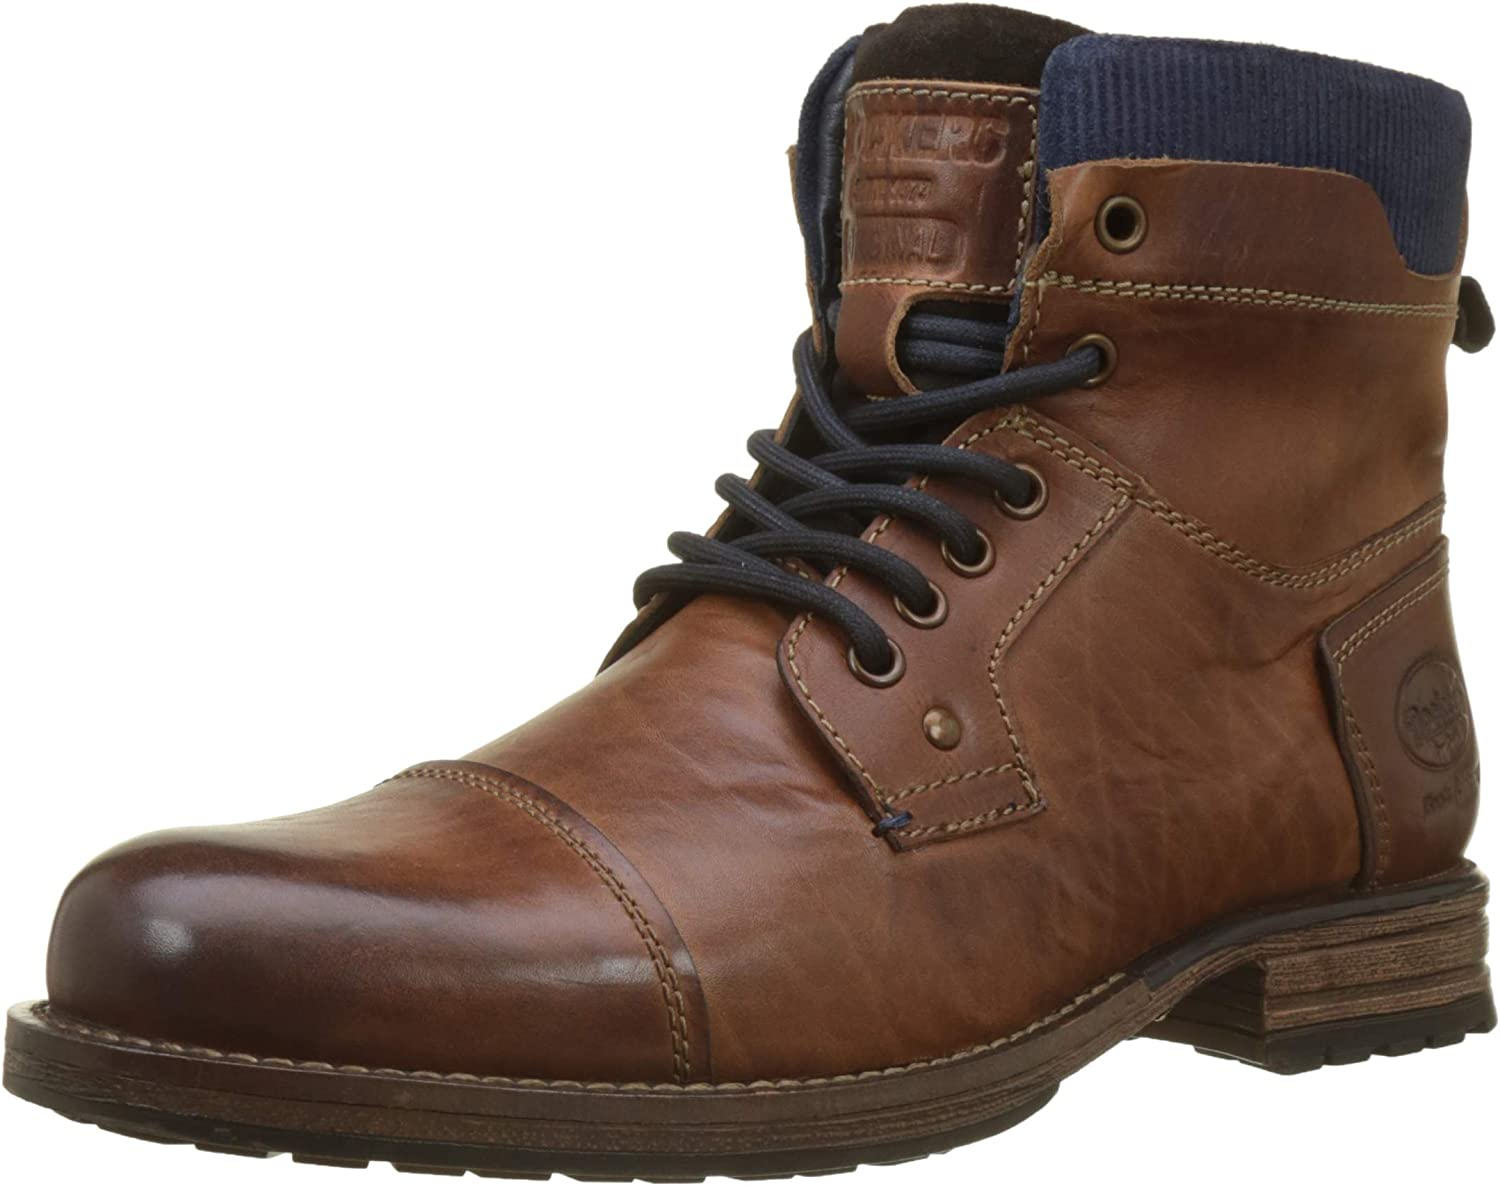 Dockers by Gerli 43dy001, Botas Clasicas Hombre